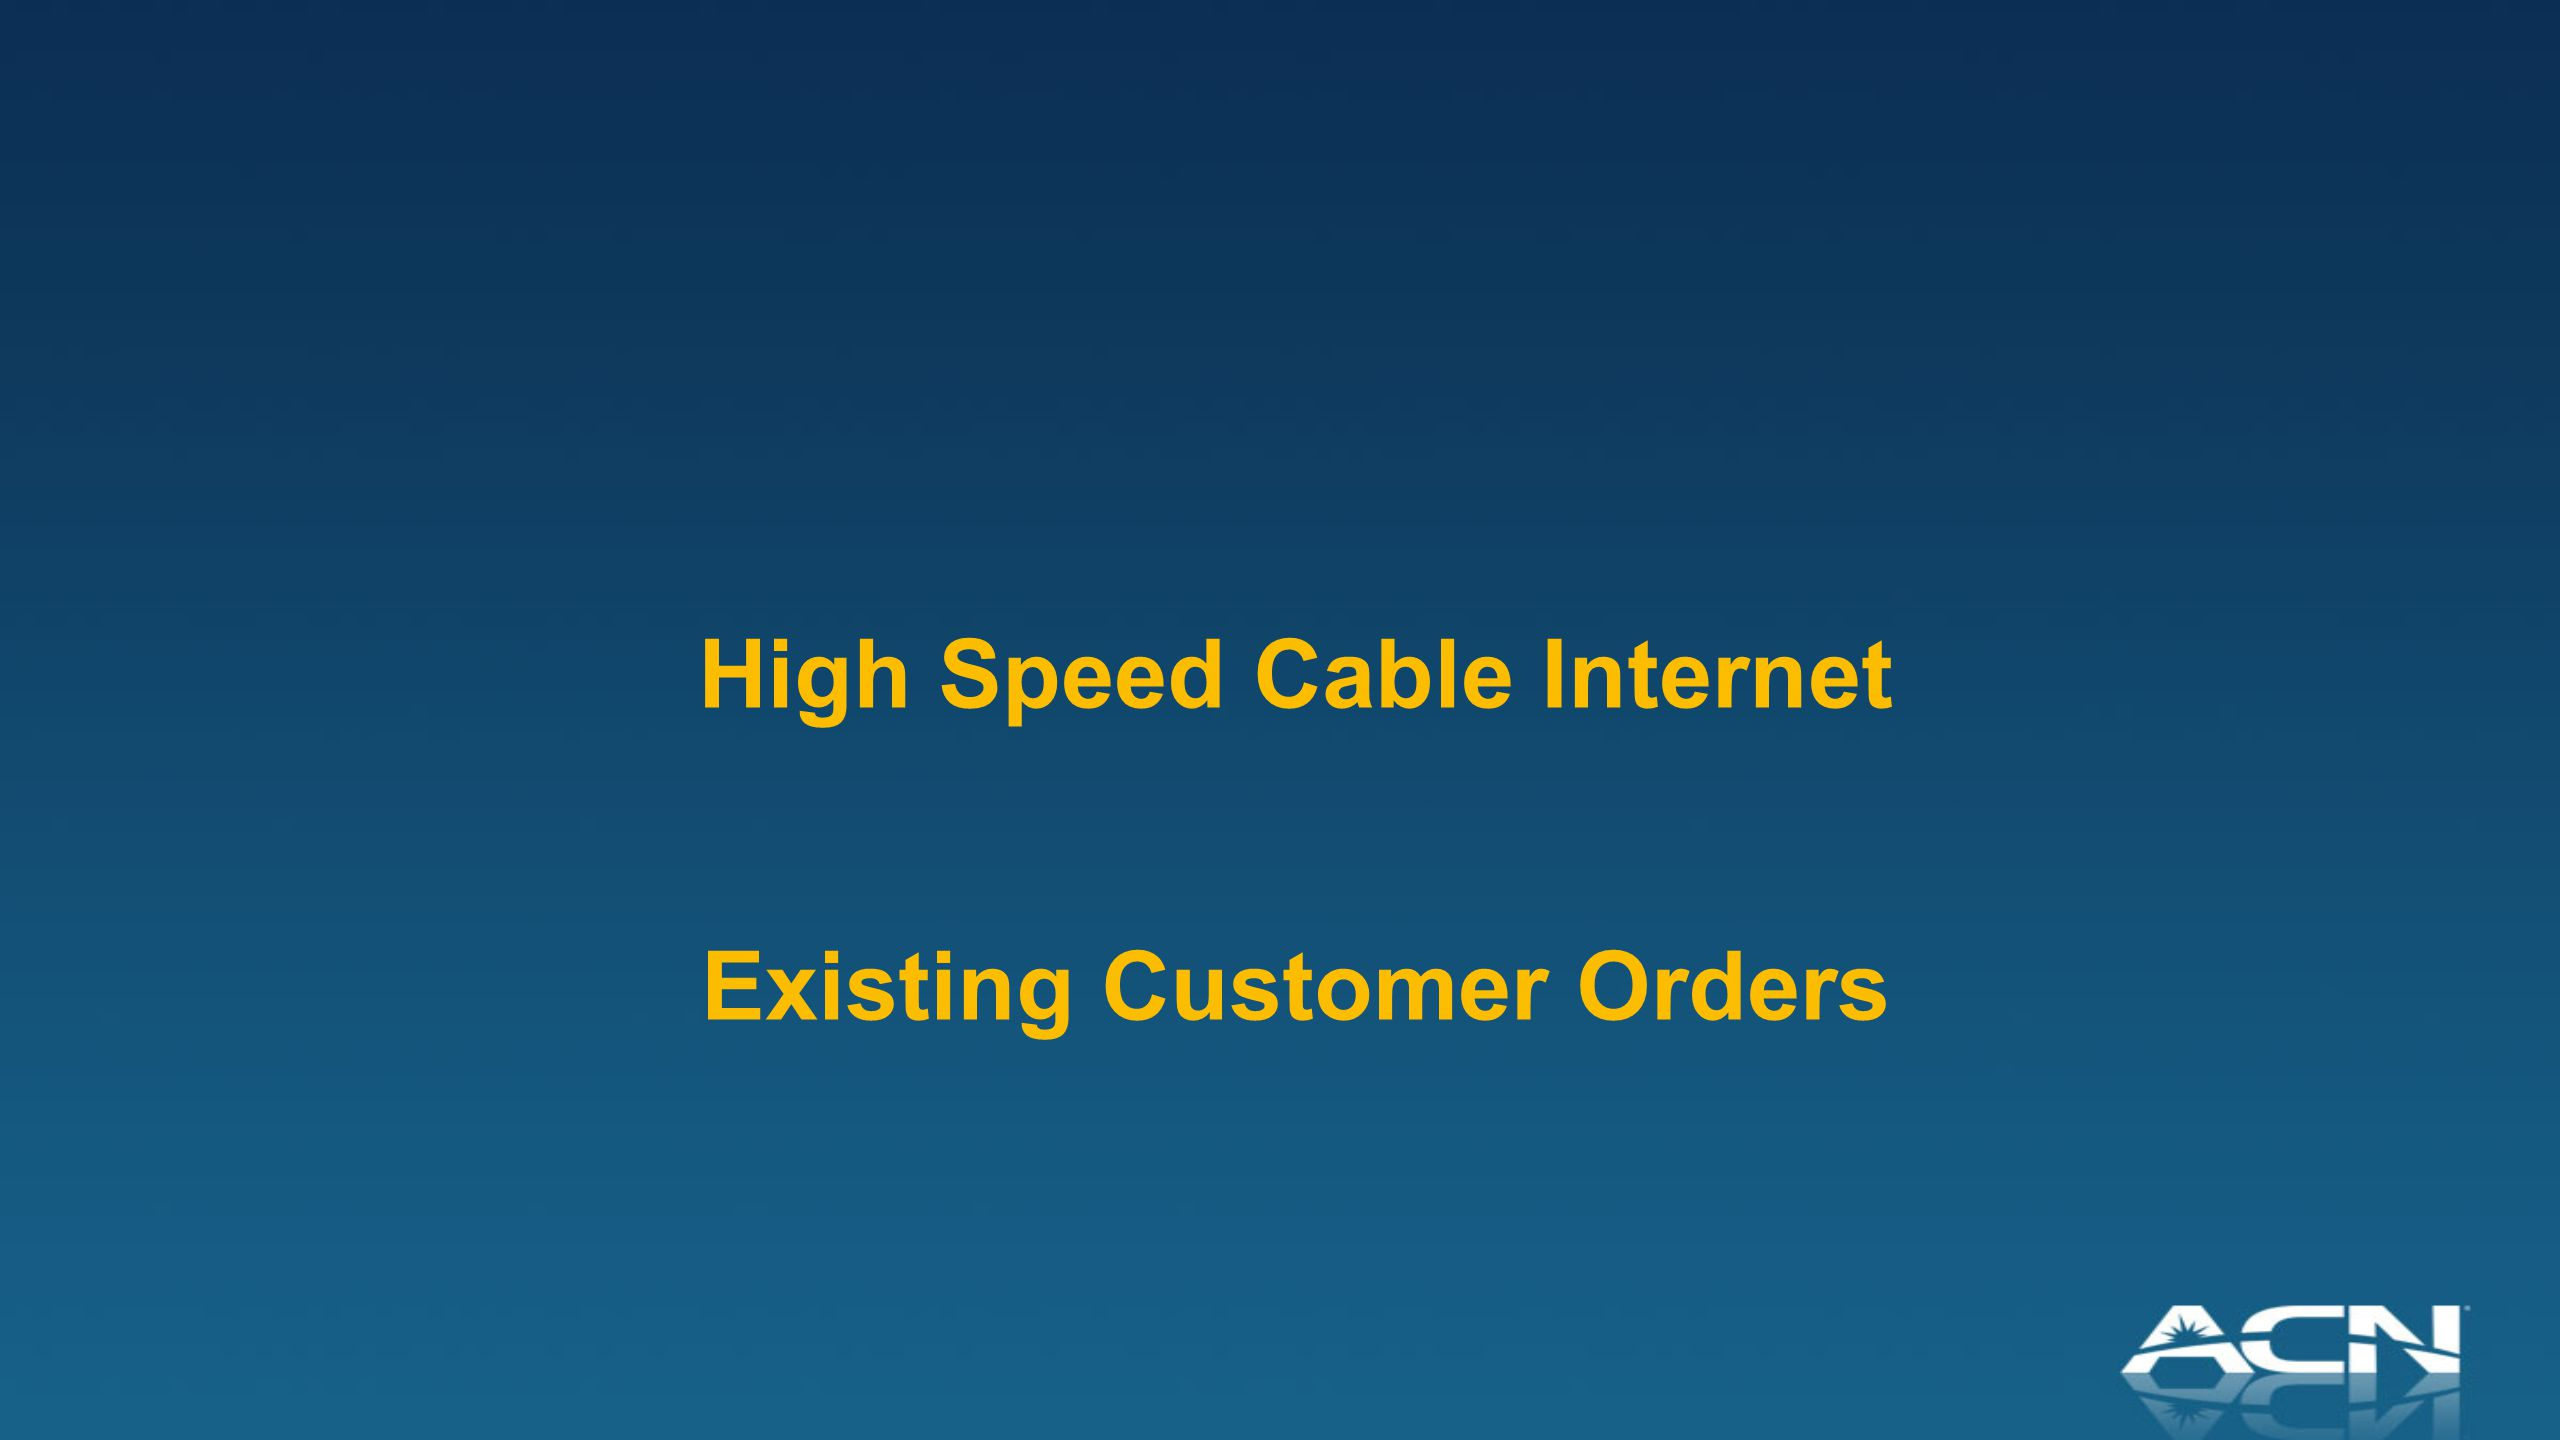 High Speed Cable Internet Existing Customer Orders